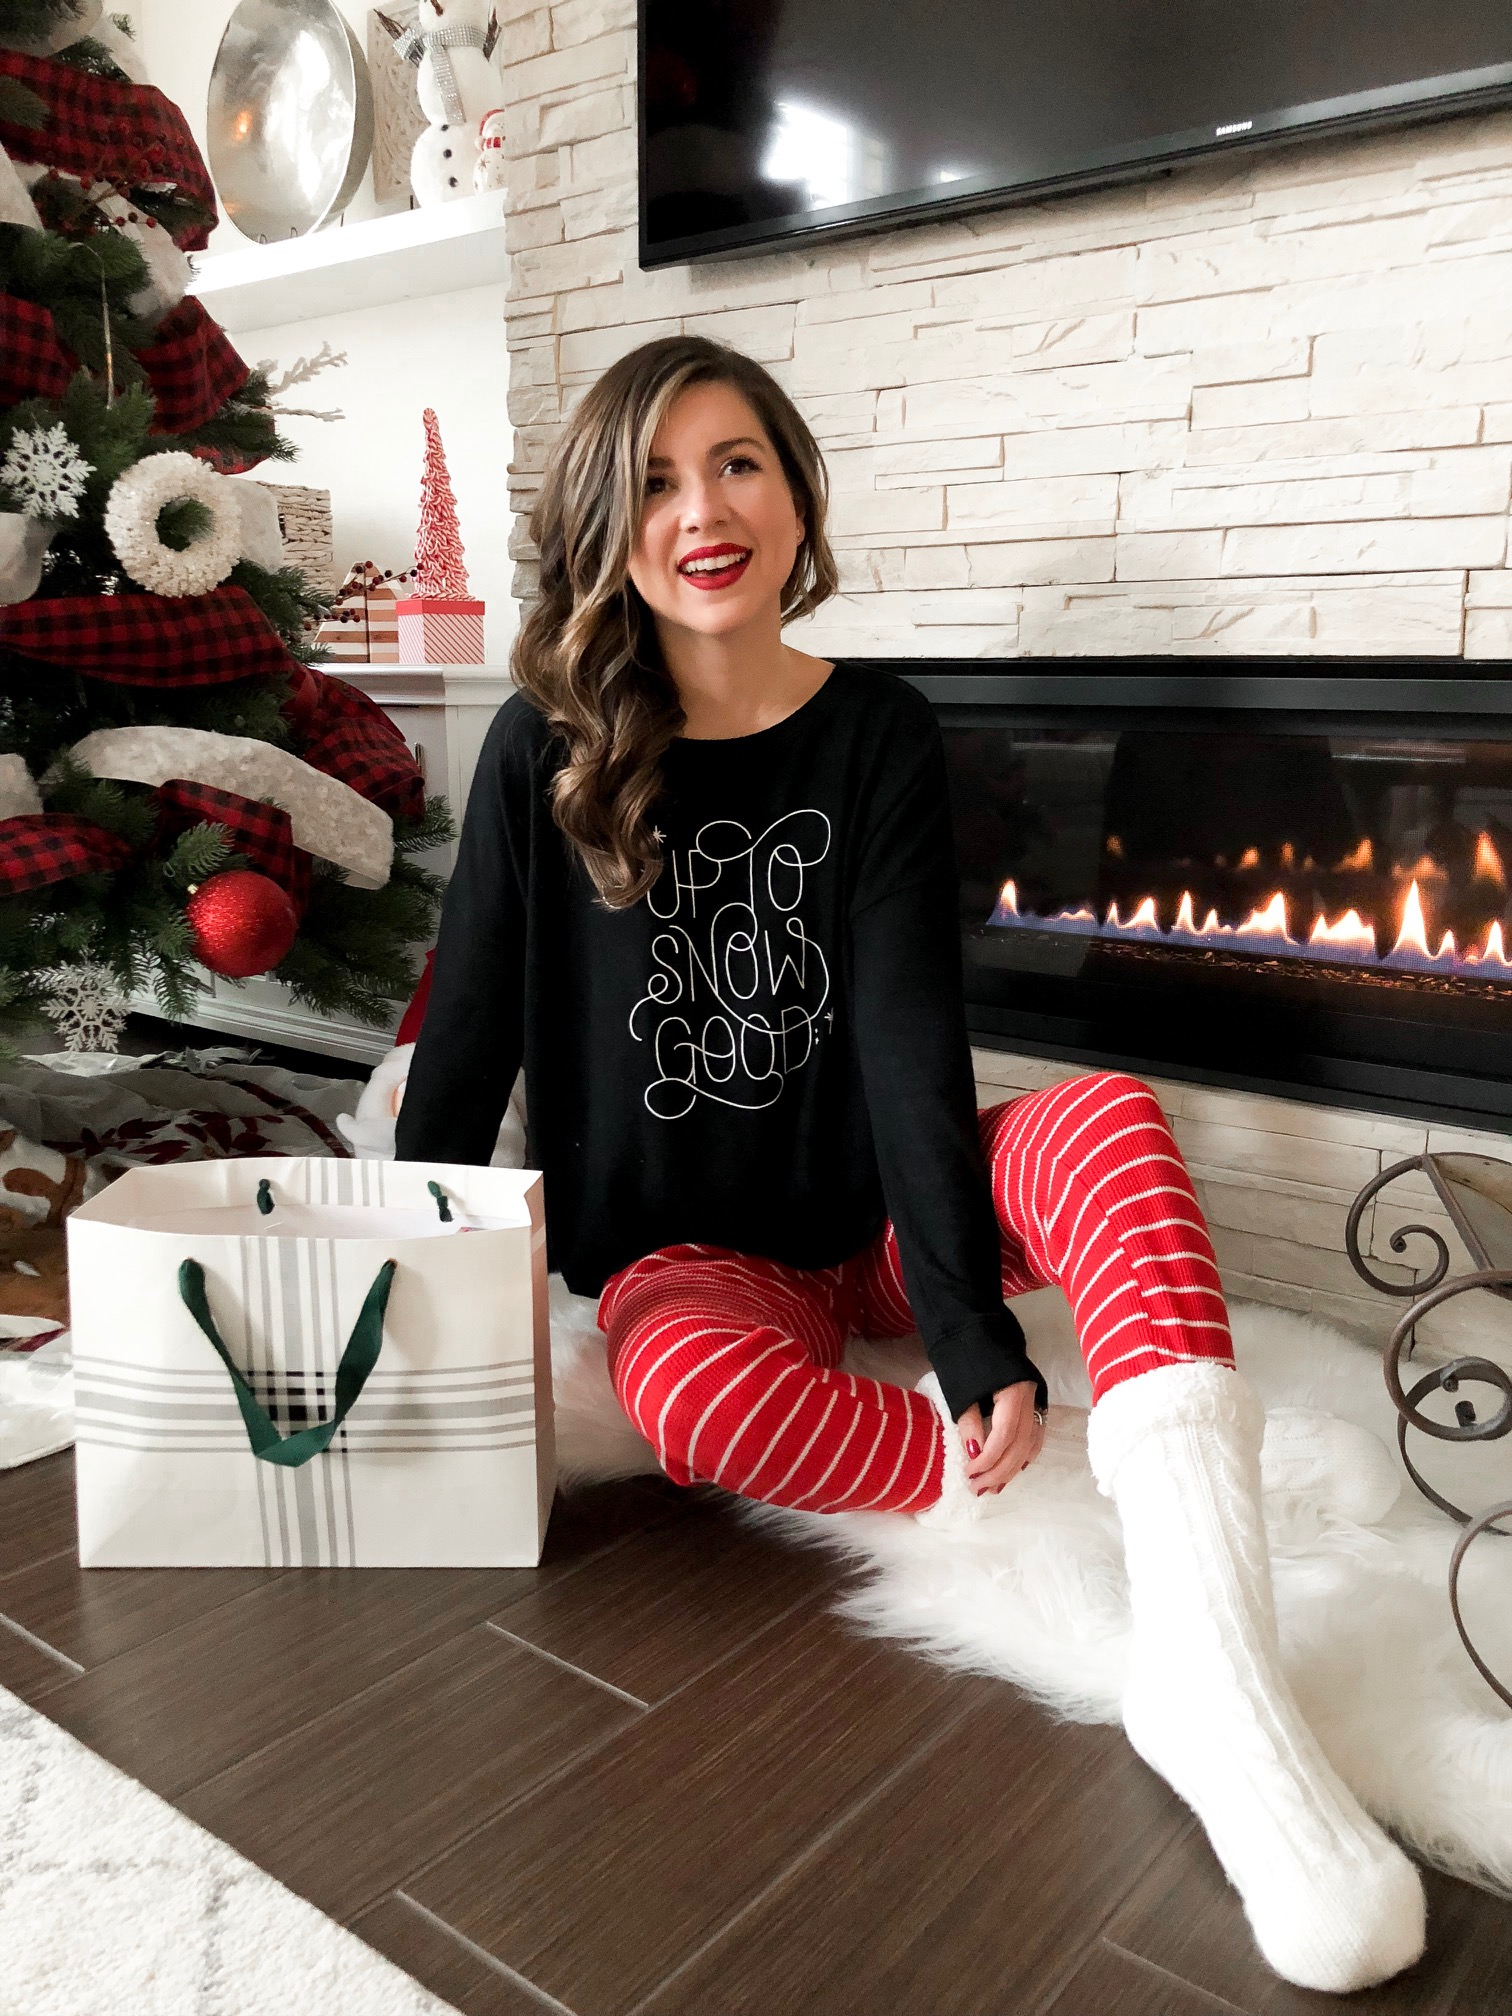 7 days of christmas - holiday giveaway - holiday gifts - simply sutter